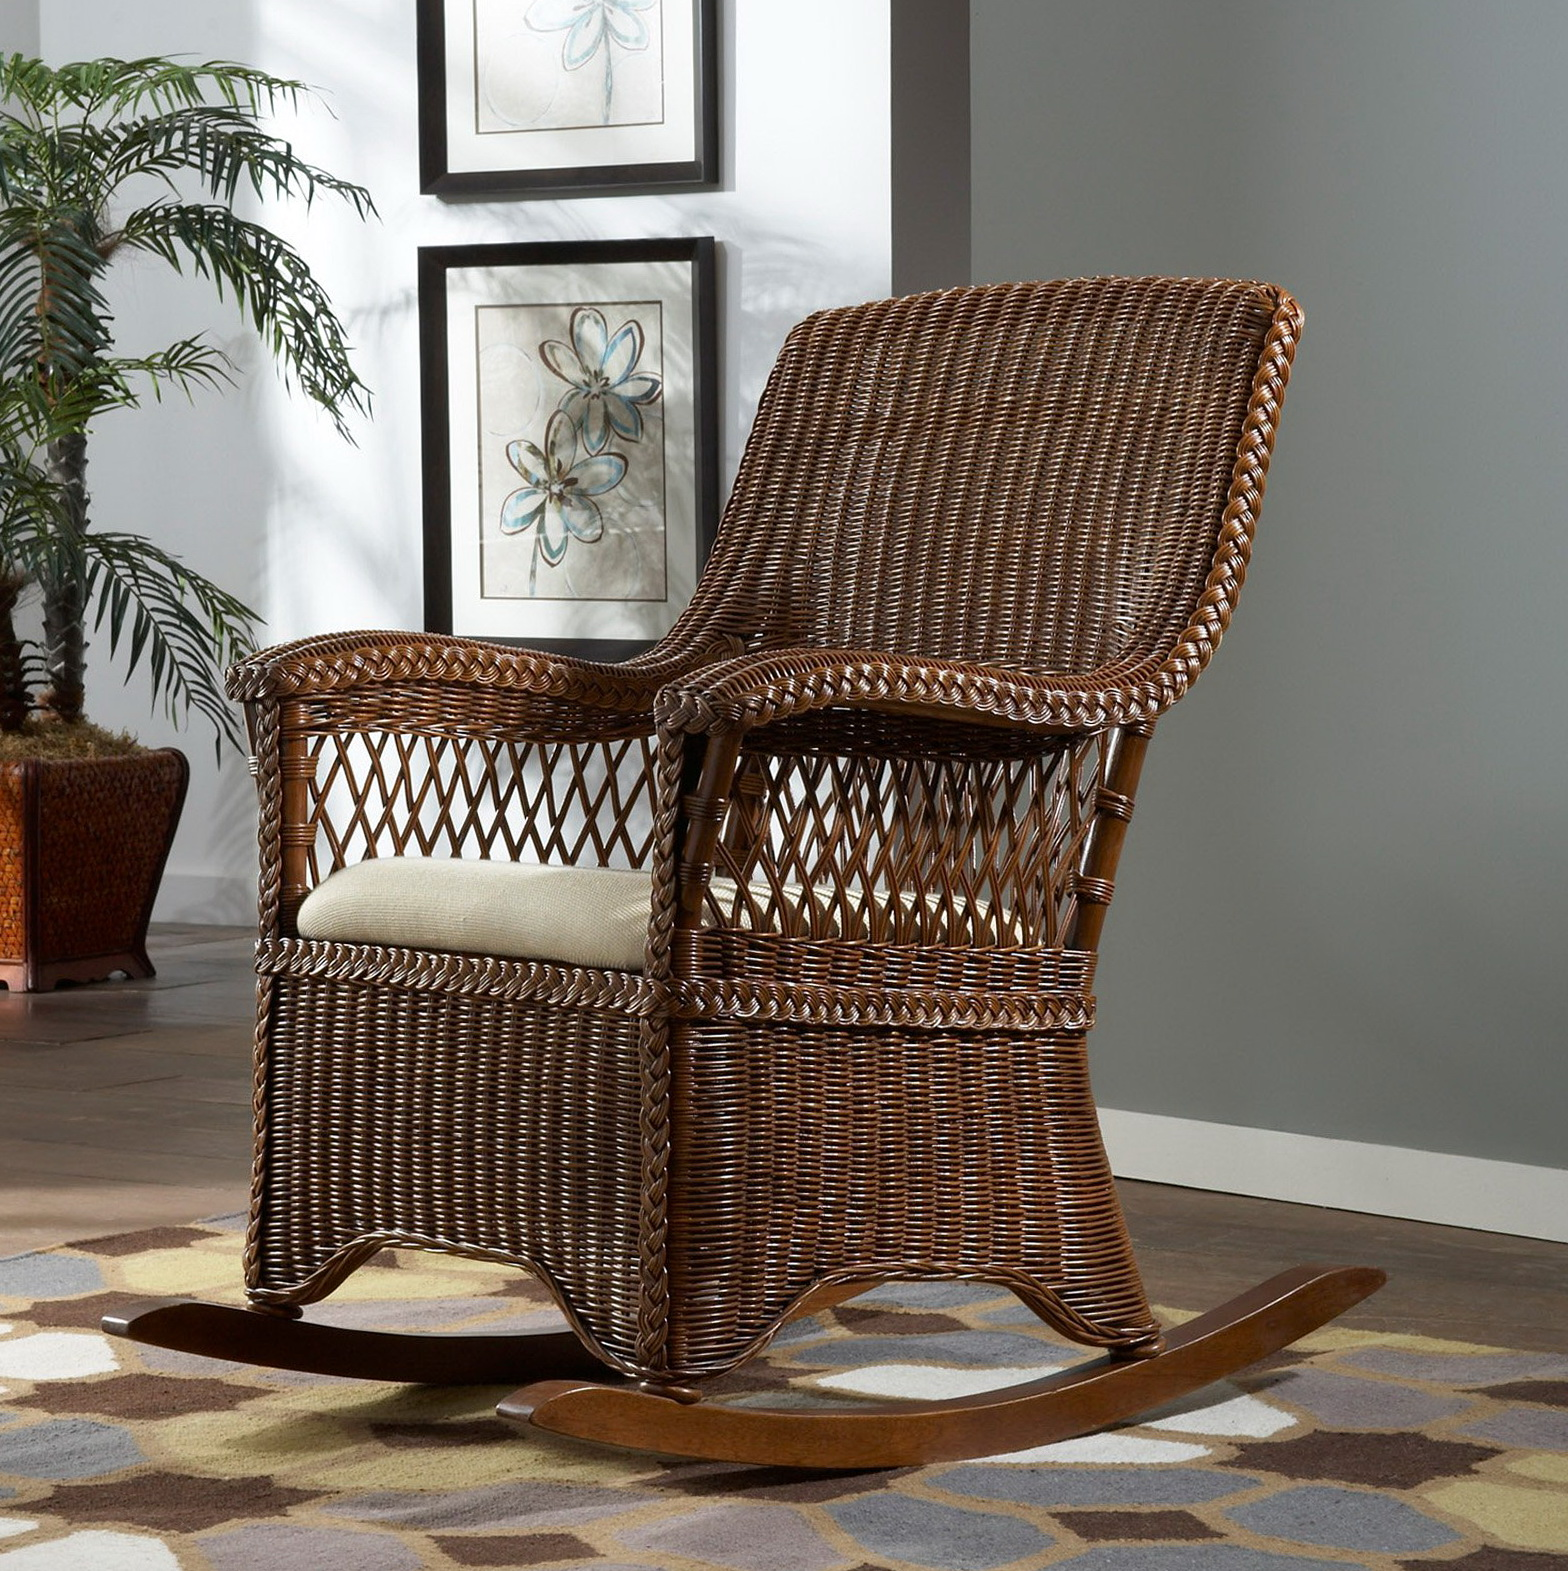 Indoor Wicker Rocking Chair Indoor Wicker Chair Cushions Home Design Ideas